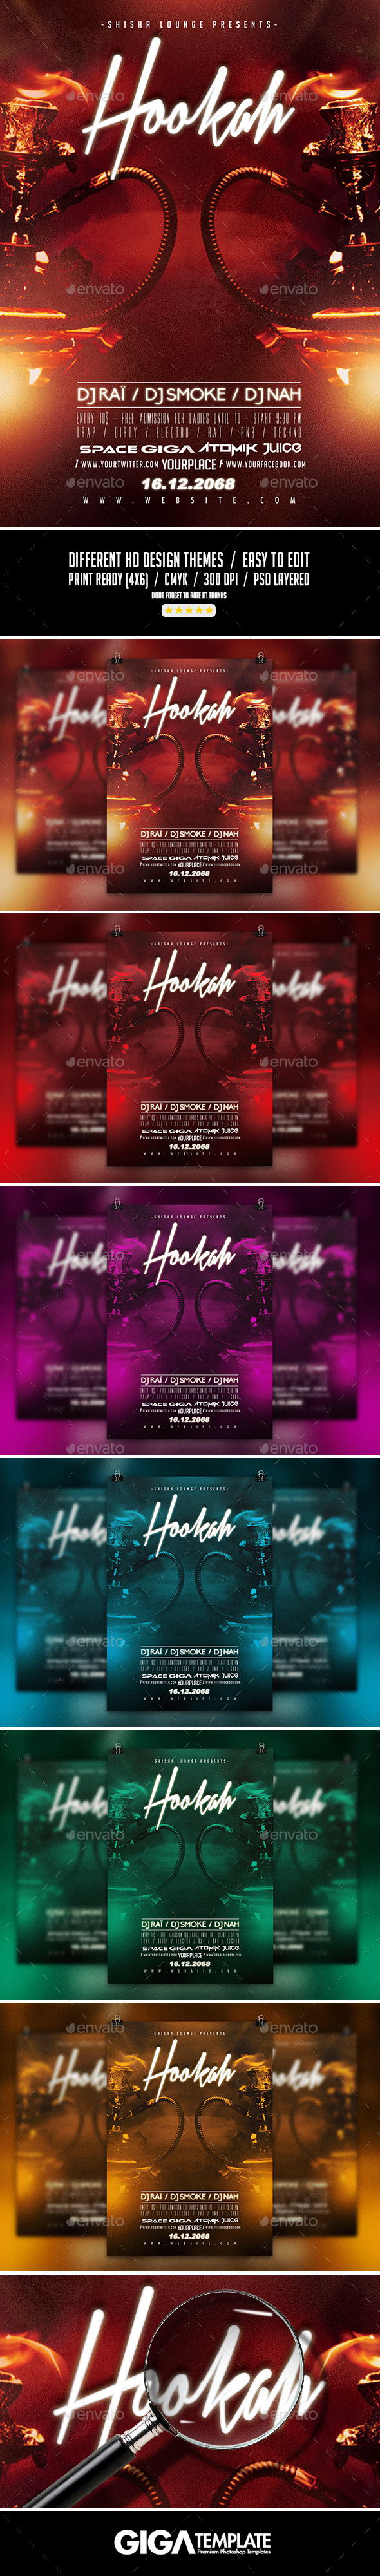 Hookah Lounge | Chic Shisha PSD Flyer Template - Events Flyers